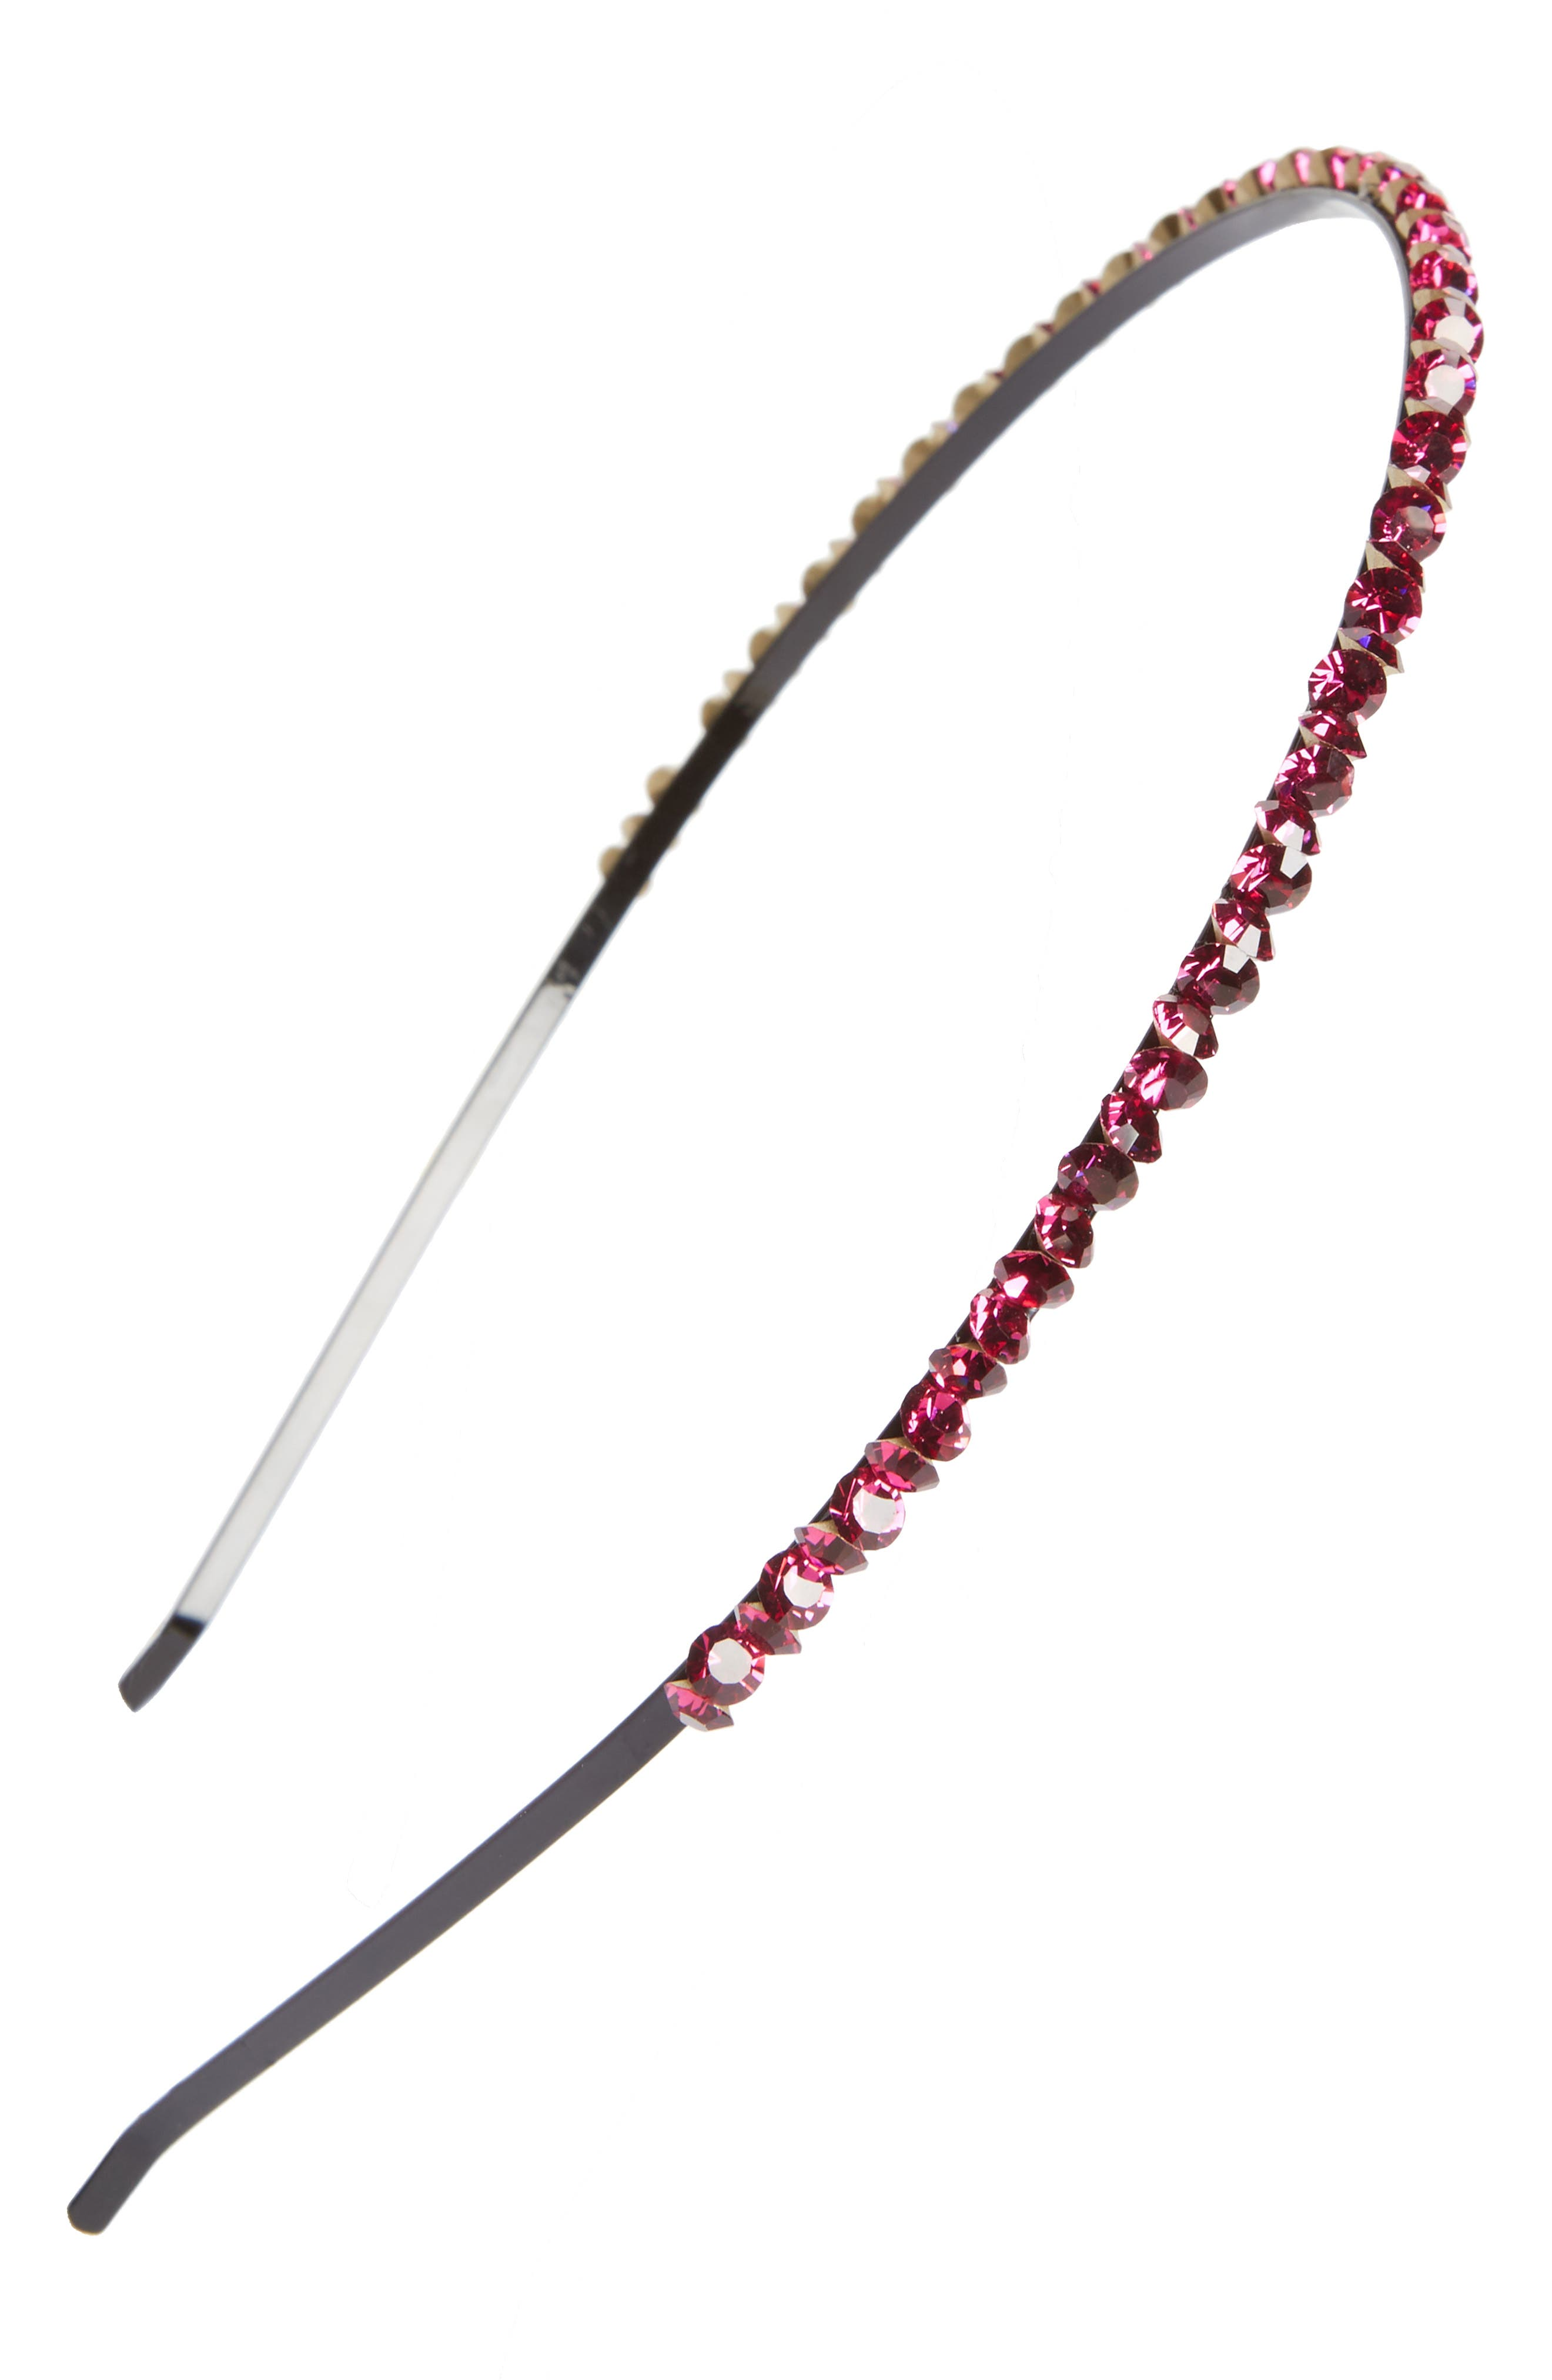 Sparkle Jem Skinny Headband,                         Main,                         color, Fucshia